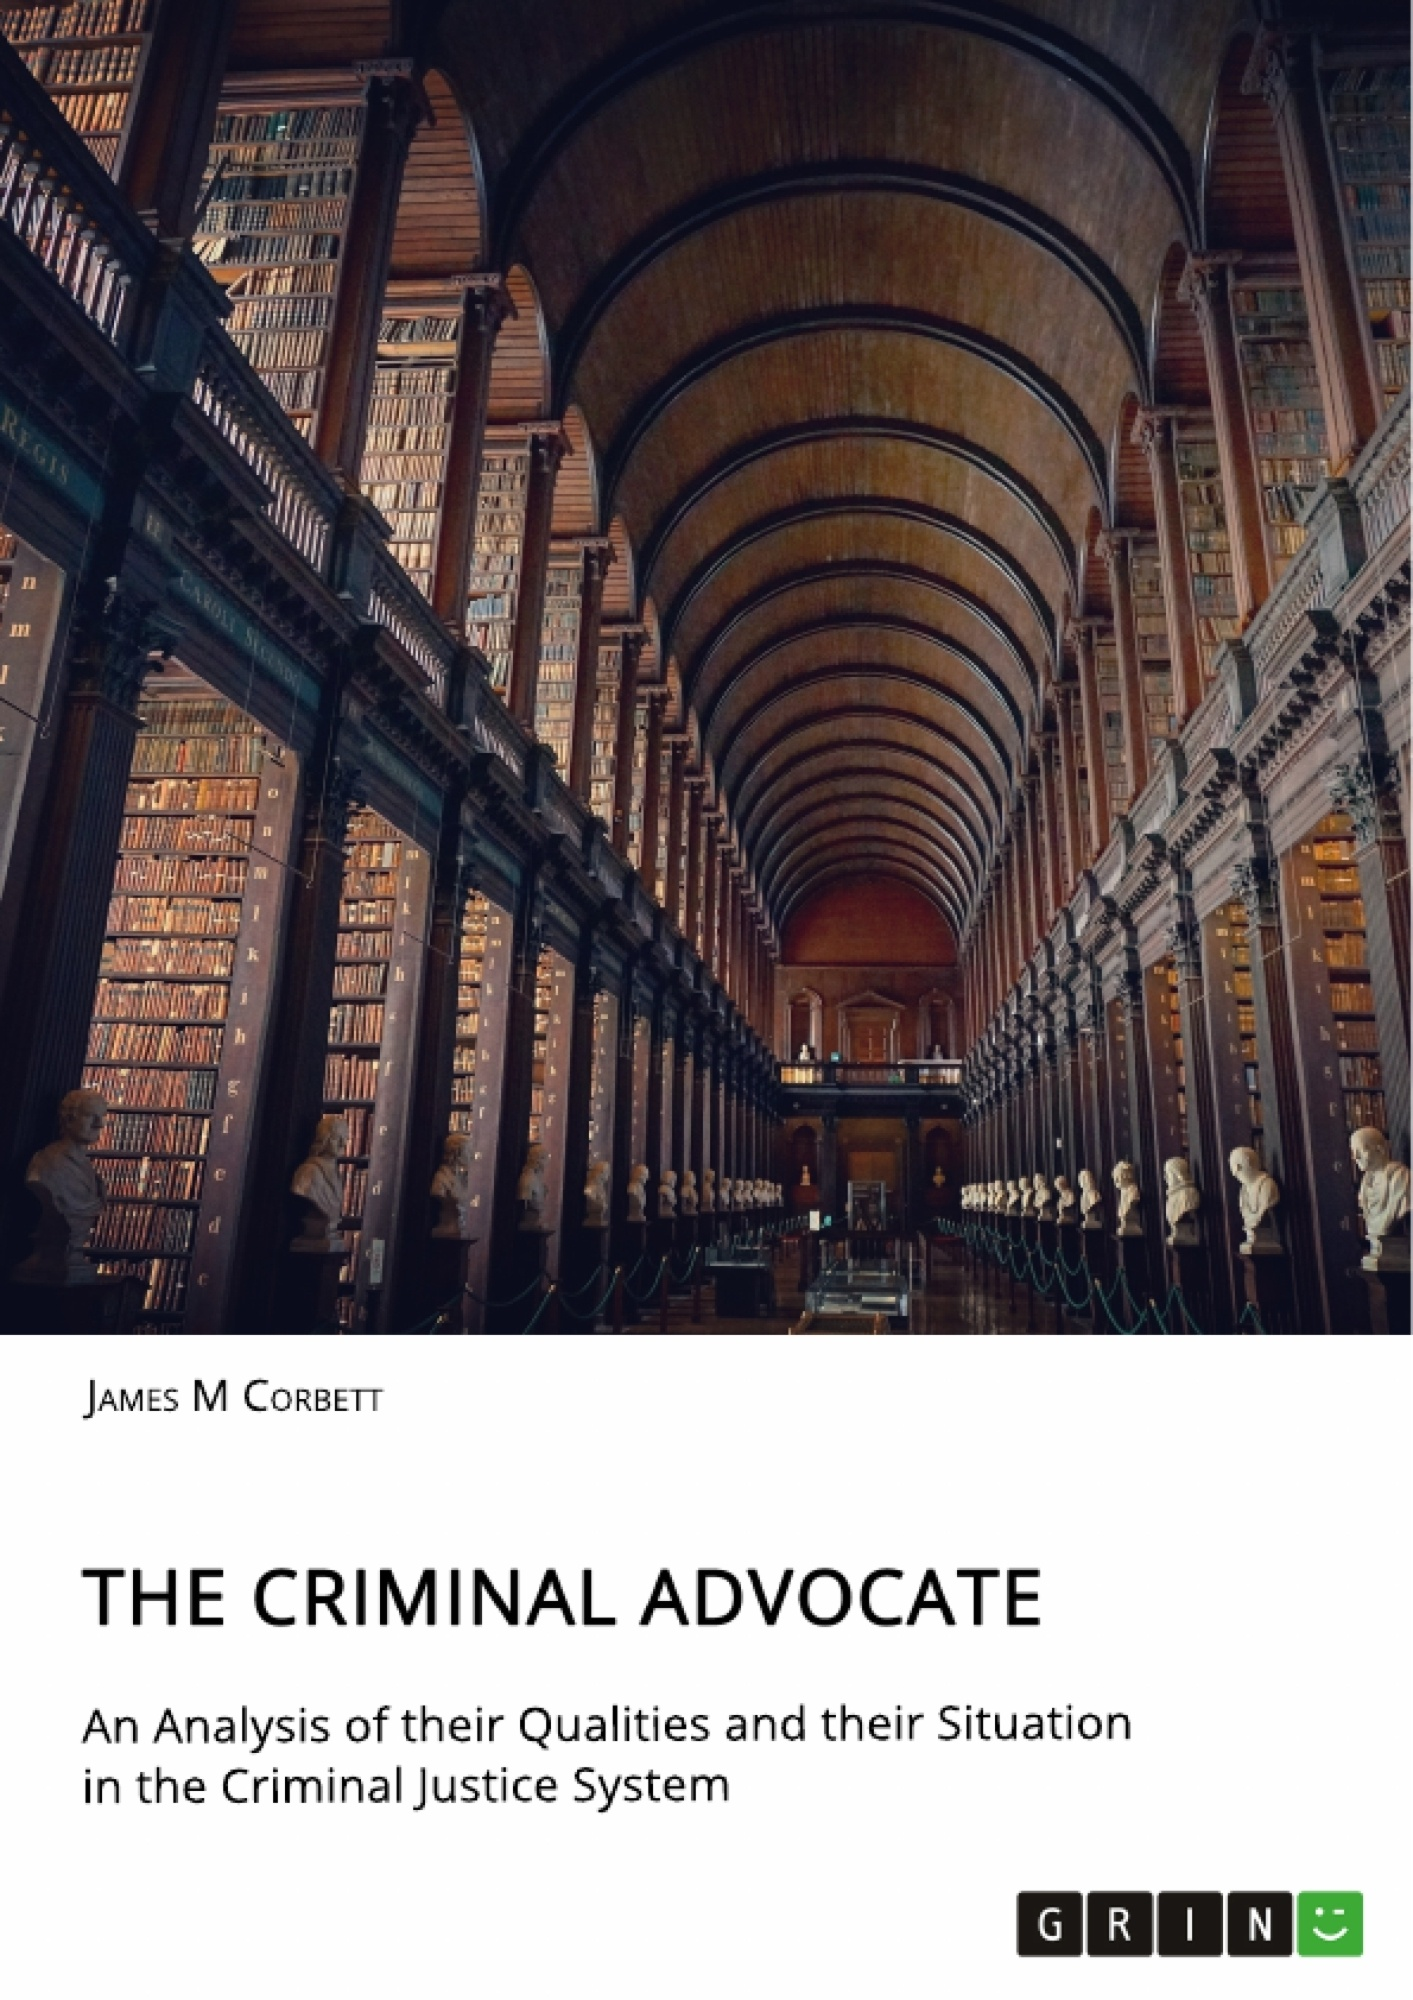 Title: The Criminal Advocate. An Analysis of their Qualities and their Situation in the Criminal Justice System